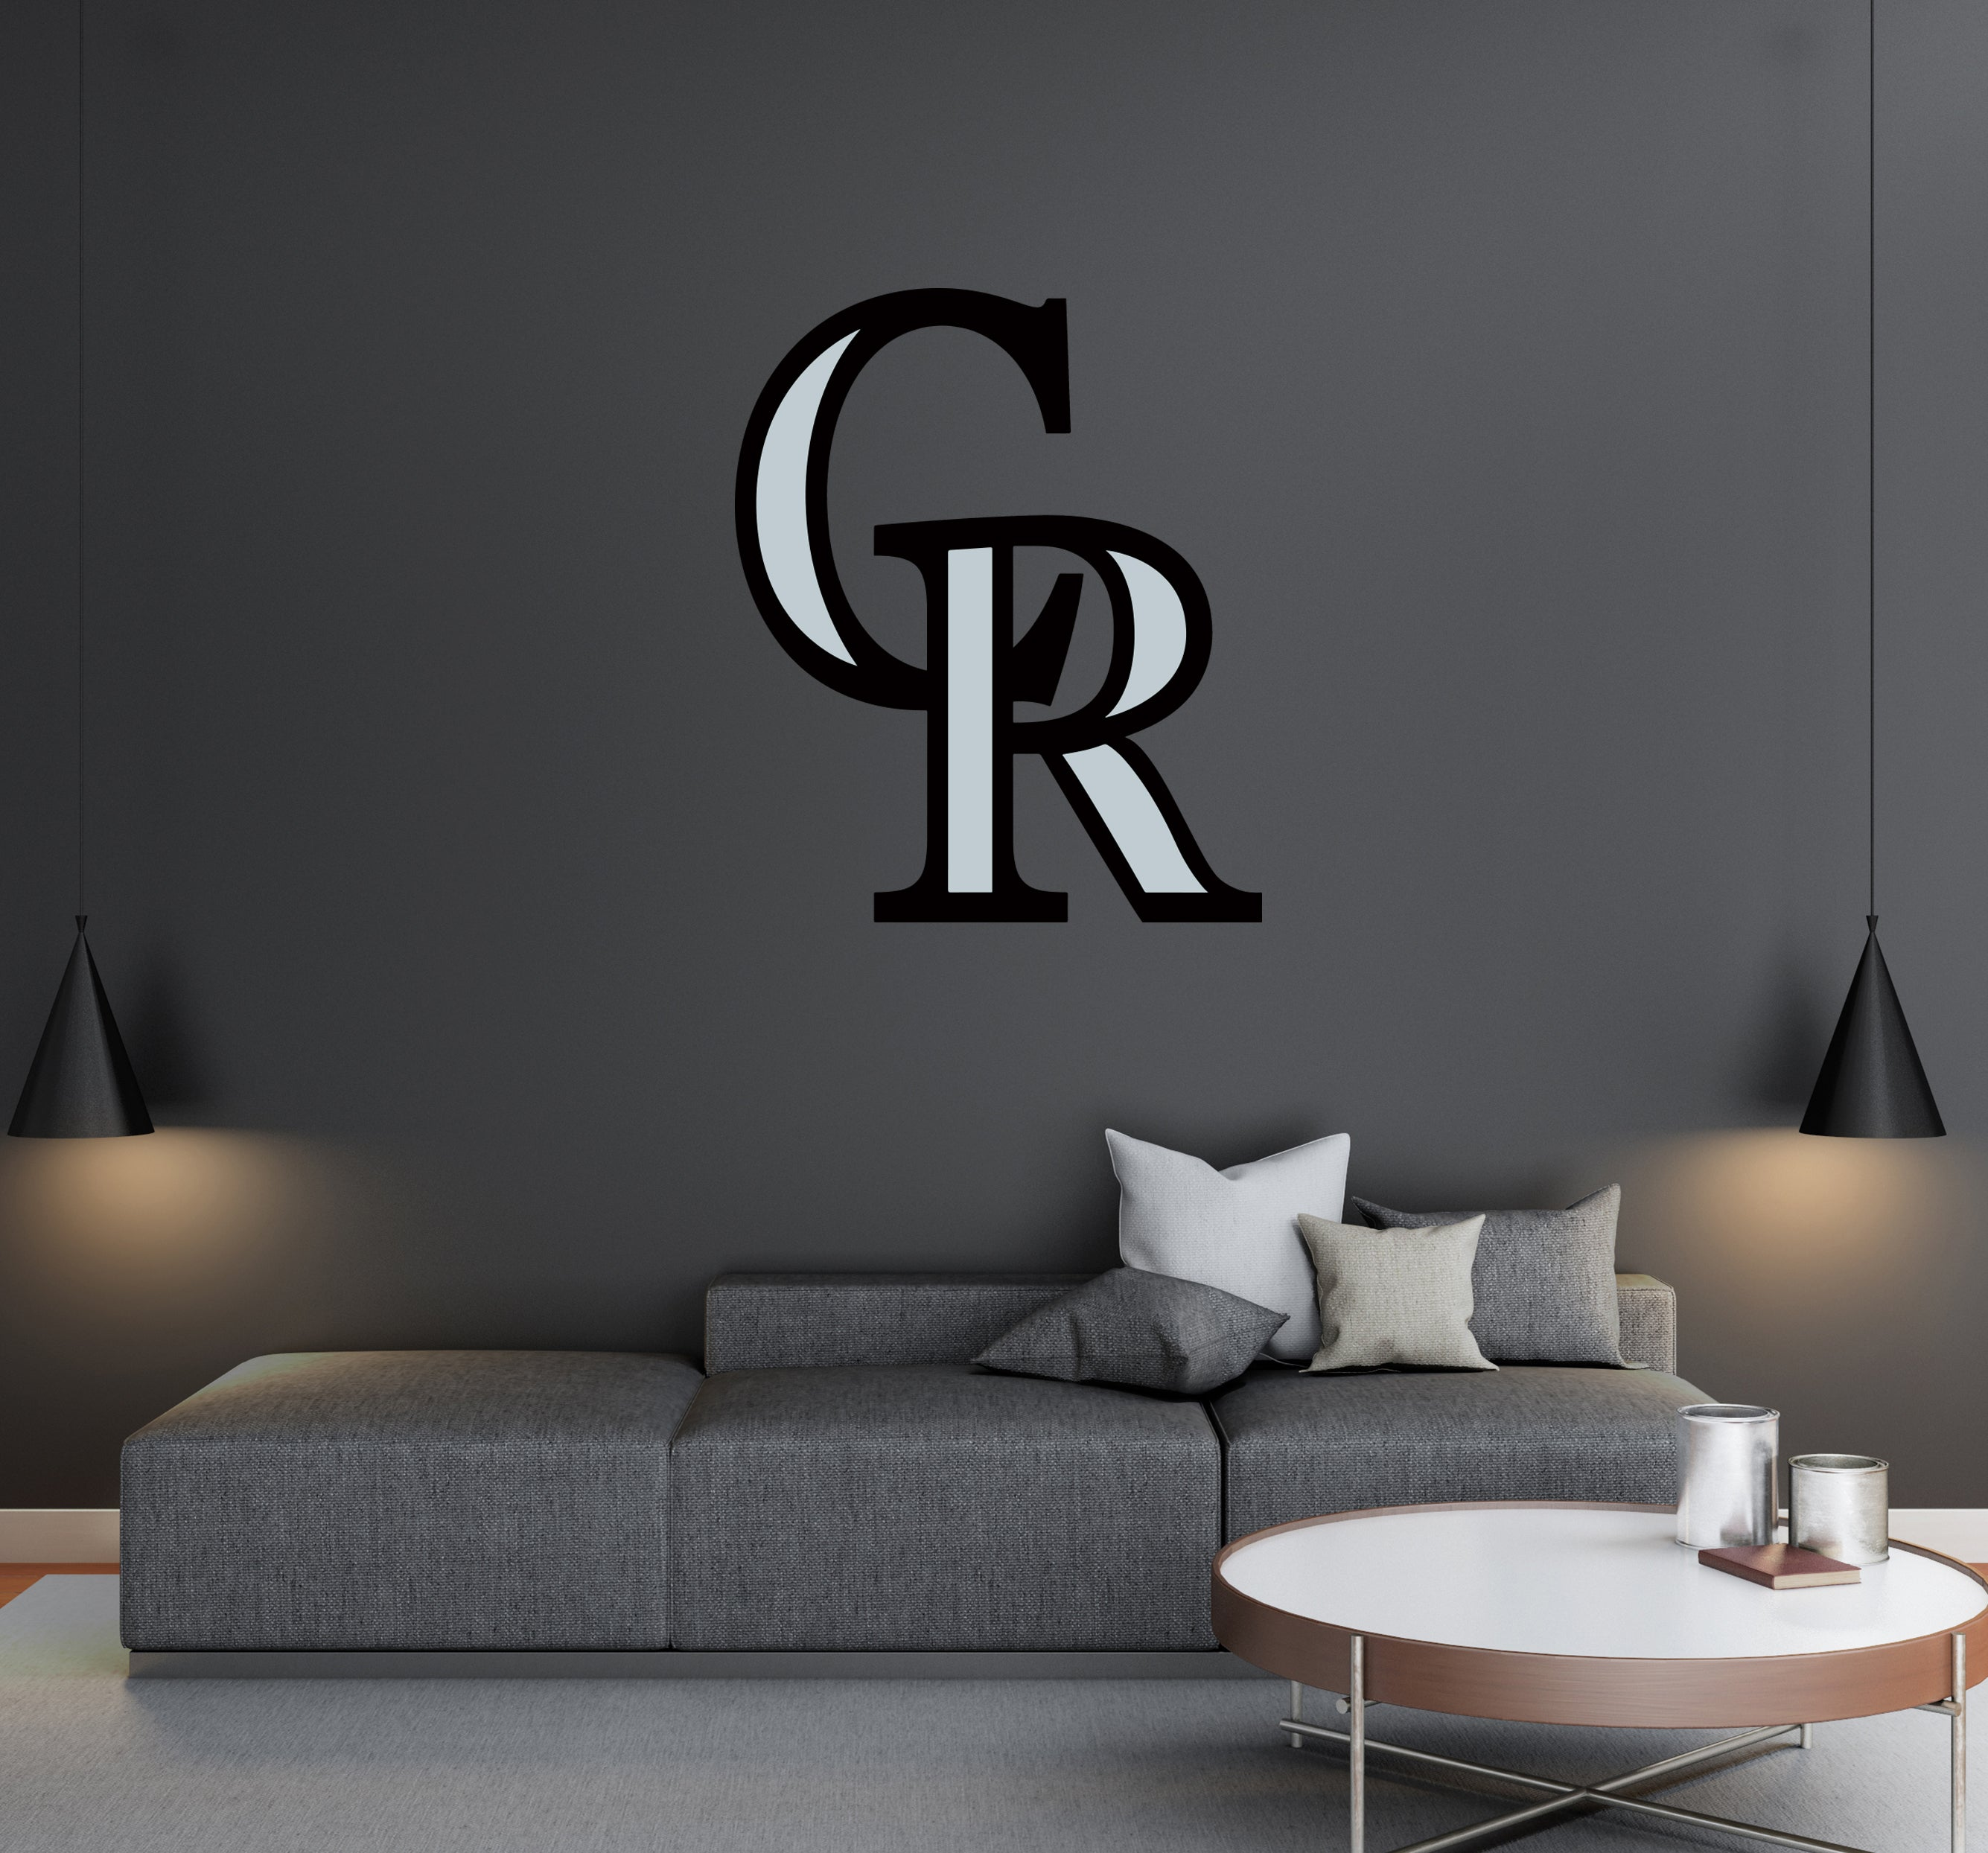 Colorado Rockies - MLB Baseball Team Logo - Wall Decal Removable & Reusable For Home Bedroom